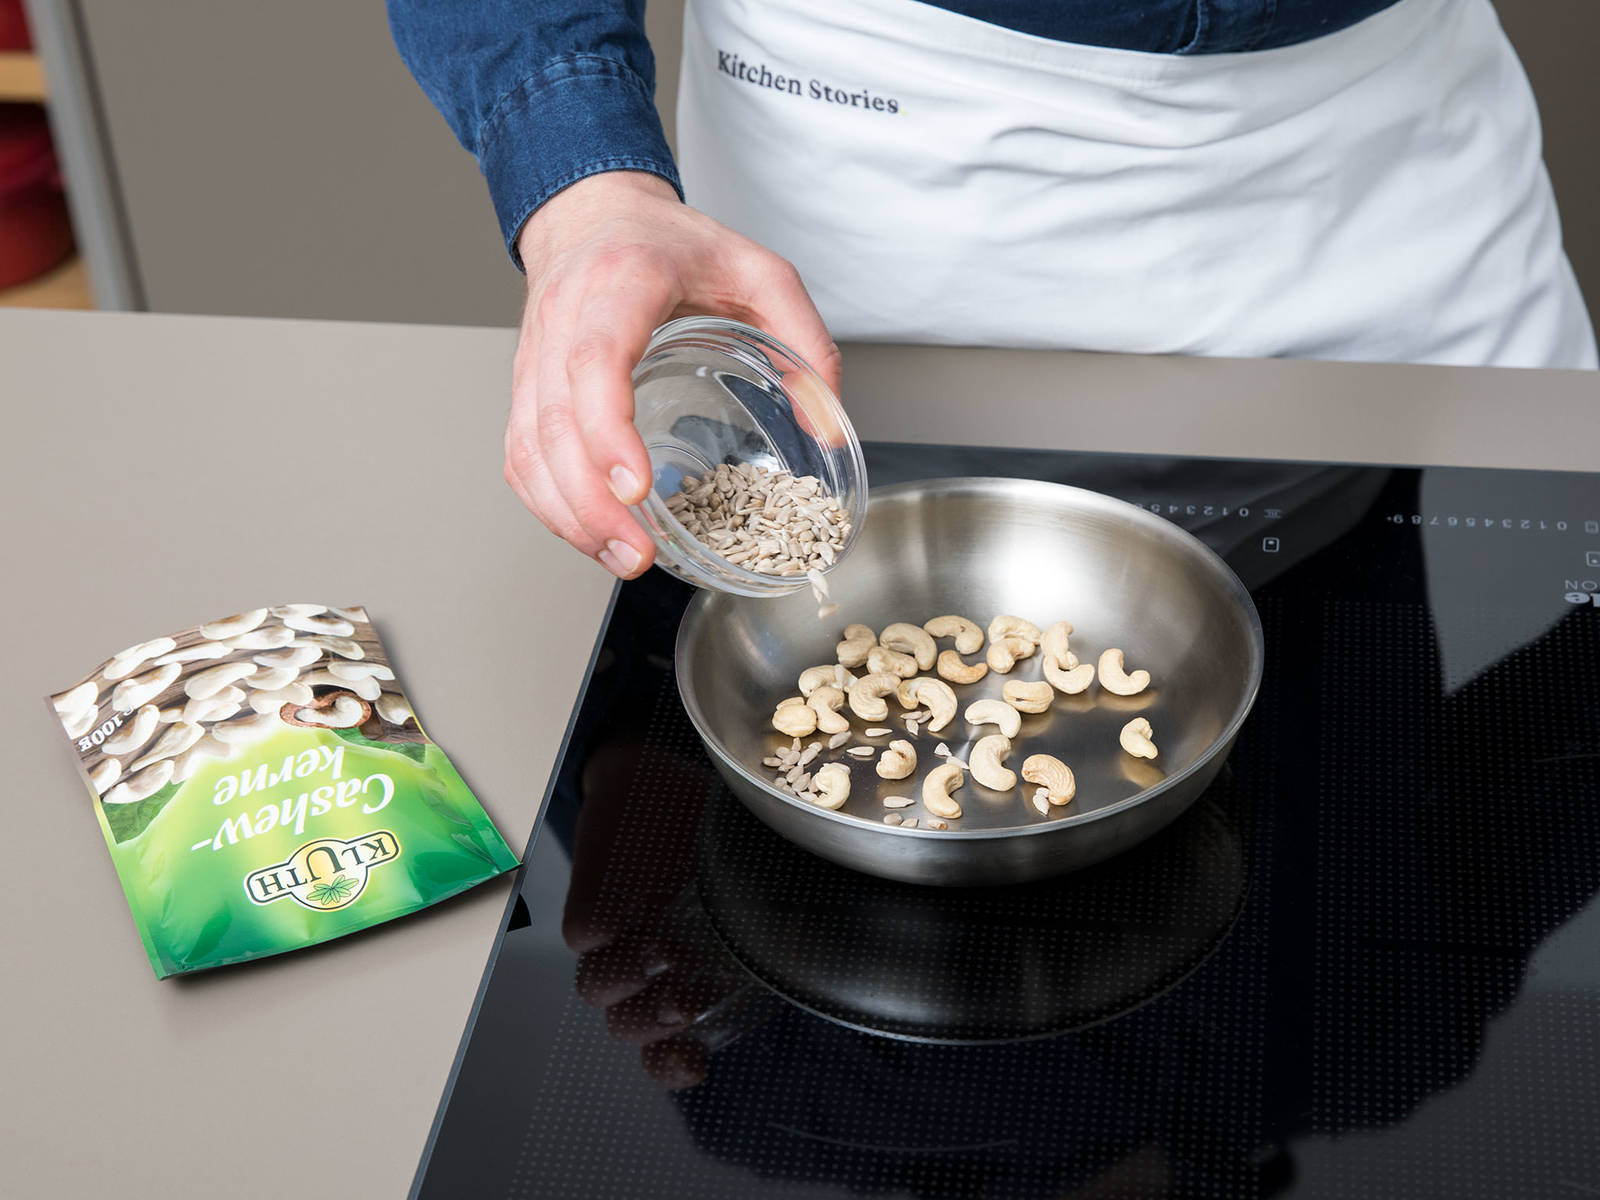 Heat a frying pan over medium-low heat. Toast cashews and sunflower seeds until fragrant and lightly browned, tossing often to avoid burning.